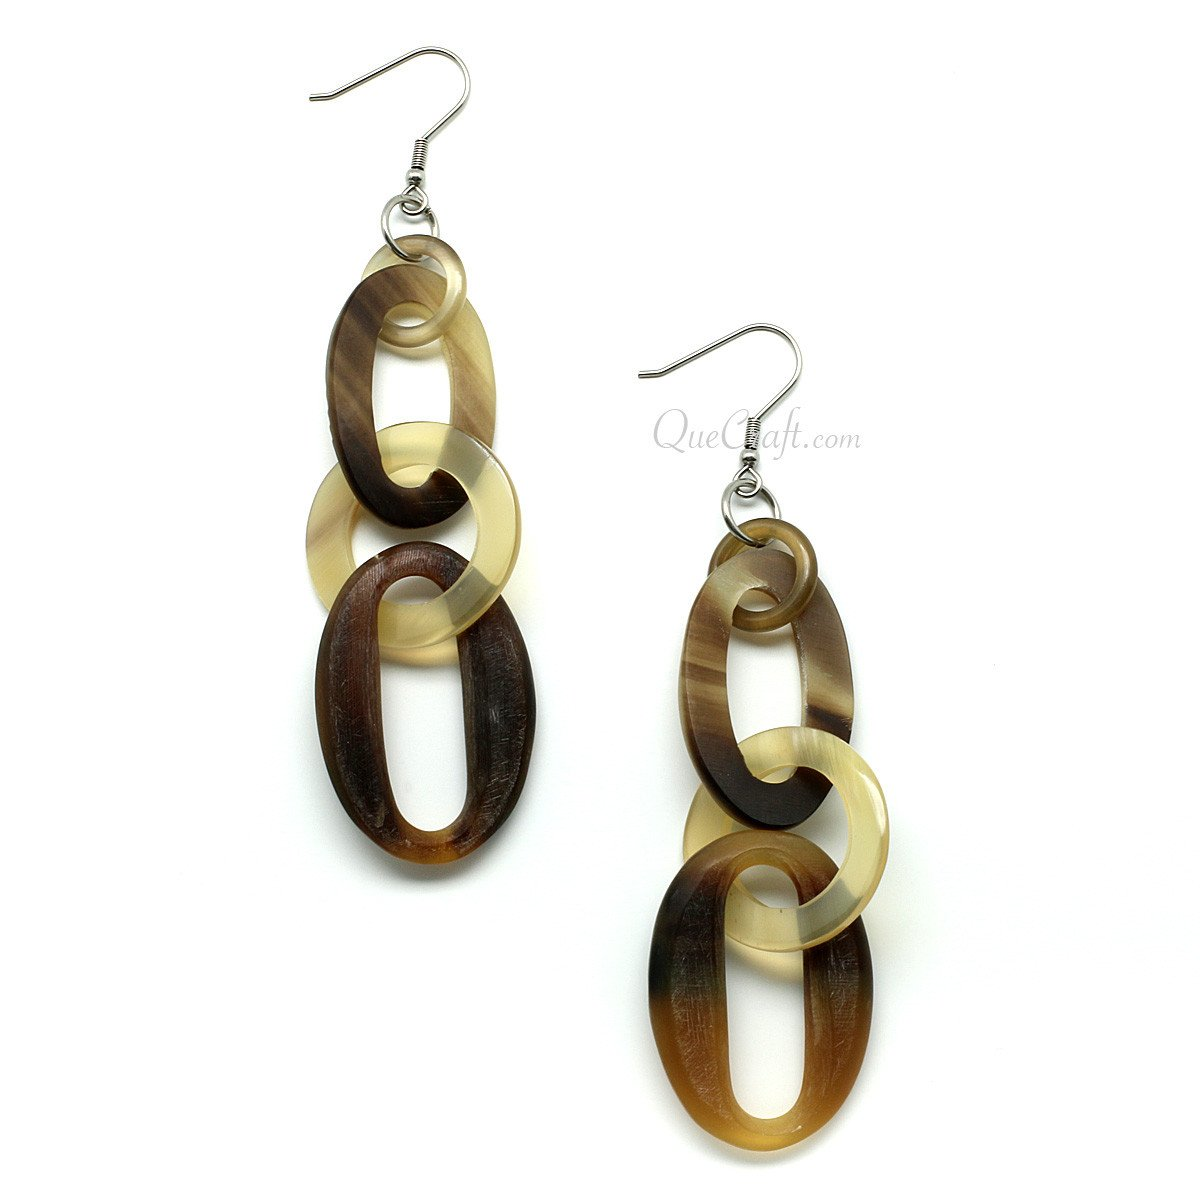 Horn Earrings #11478 - HORN.JEWELRY by QueCraft